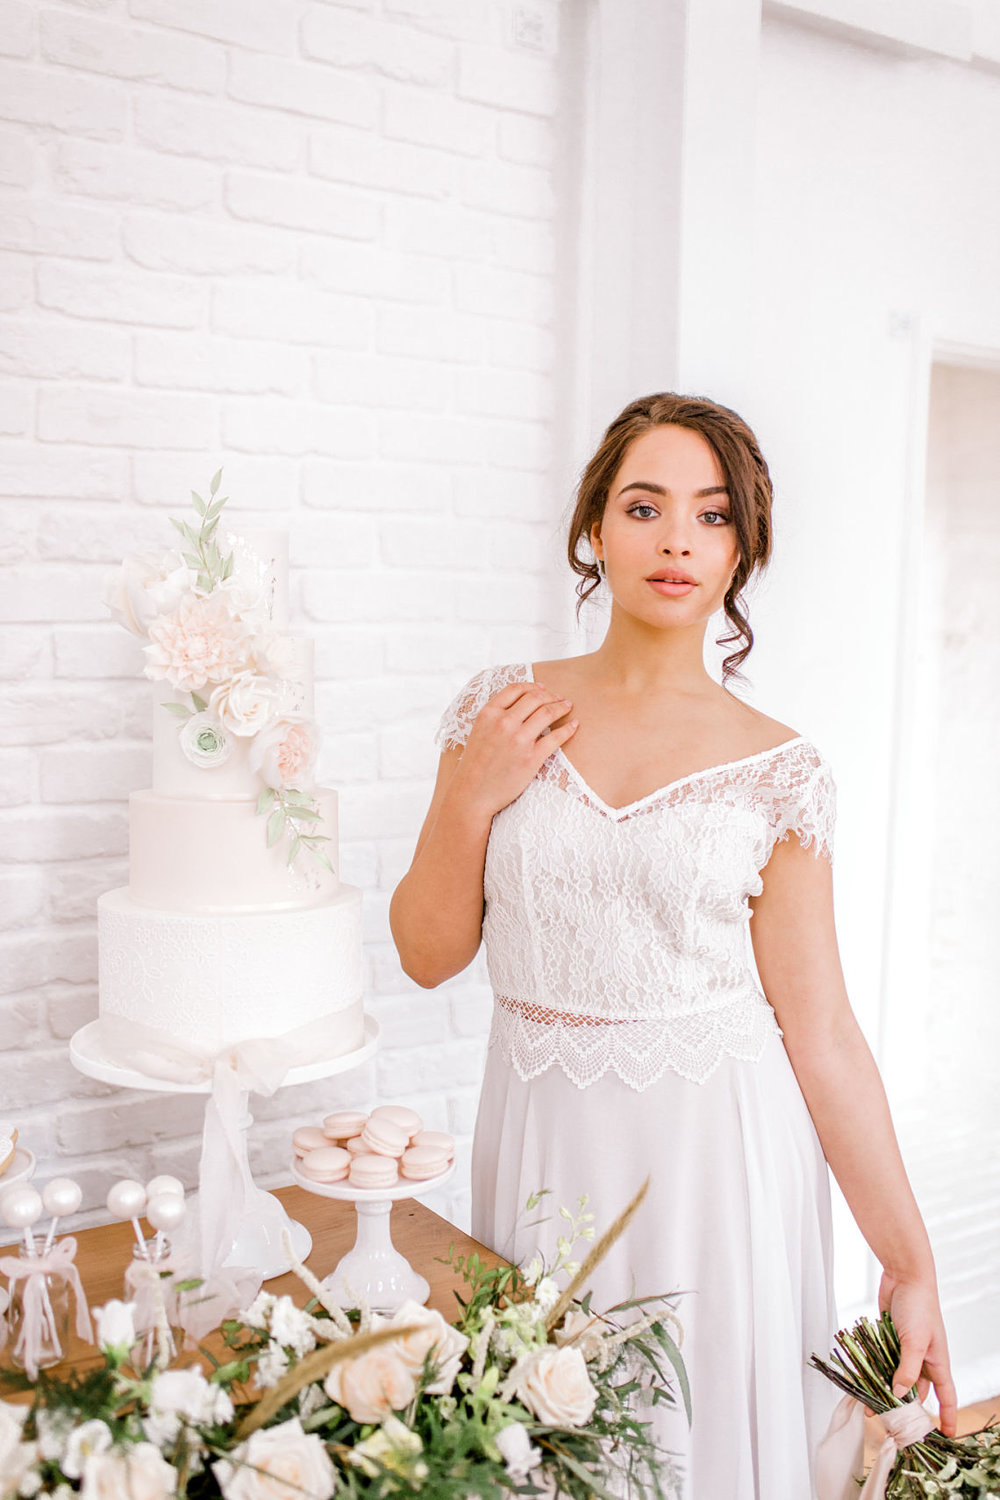 bride with wedding cake - essex wedding planner - fine art styled shoot